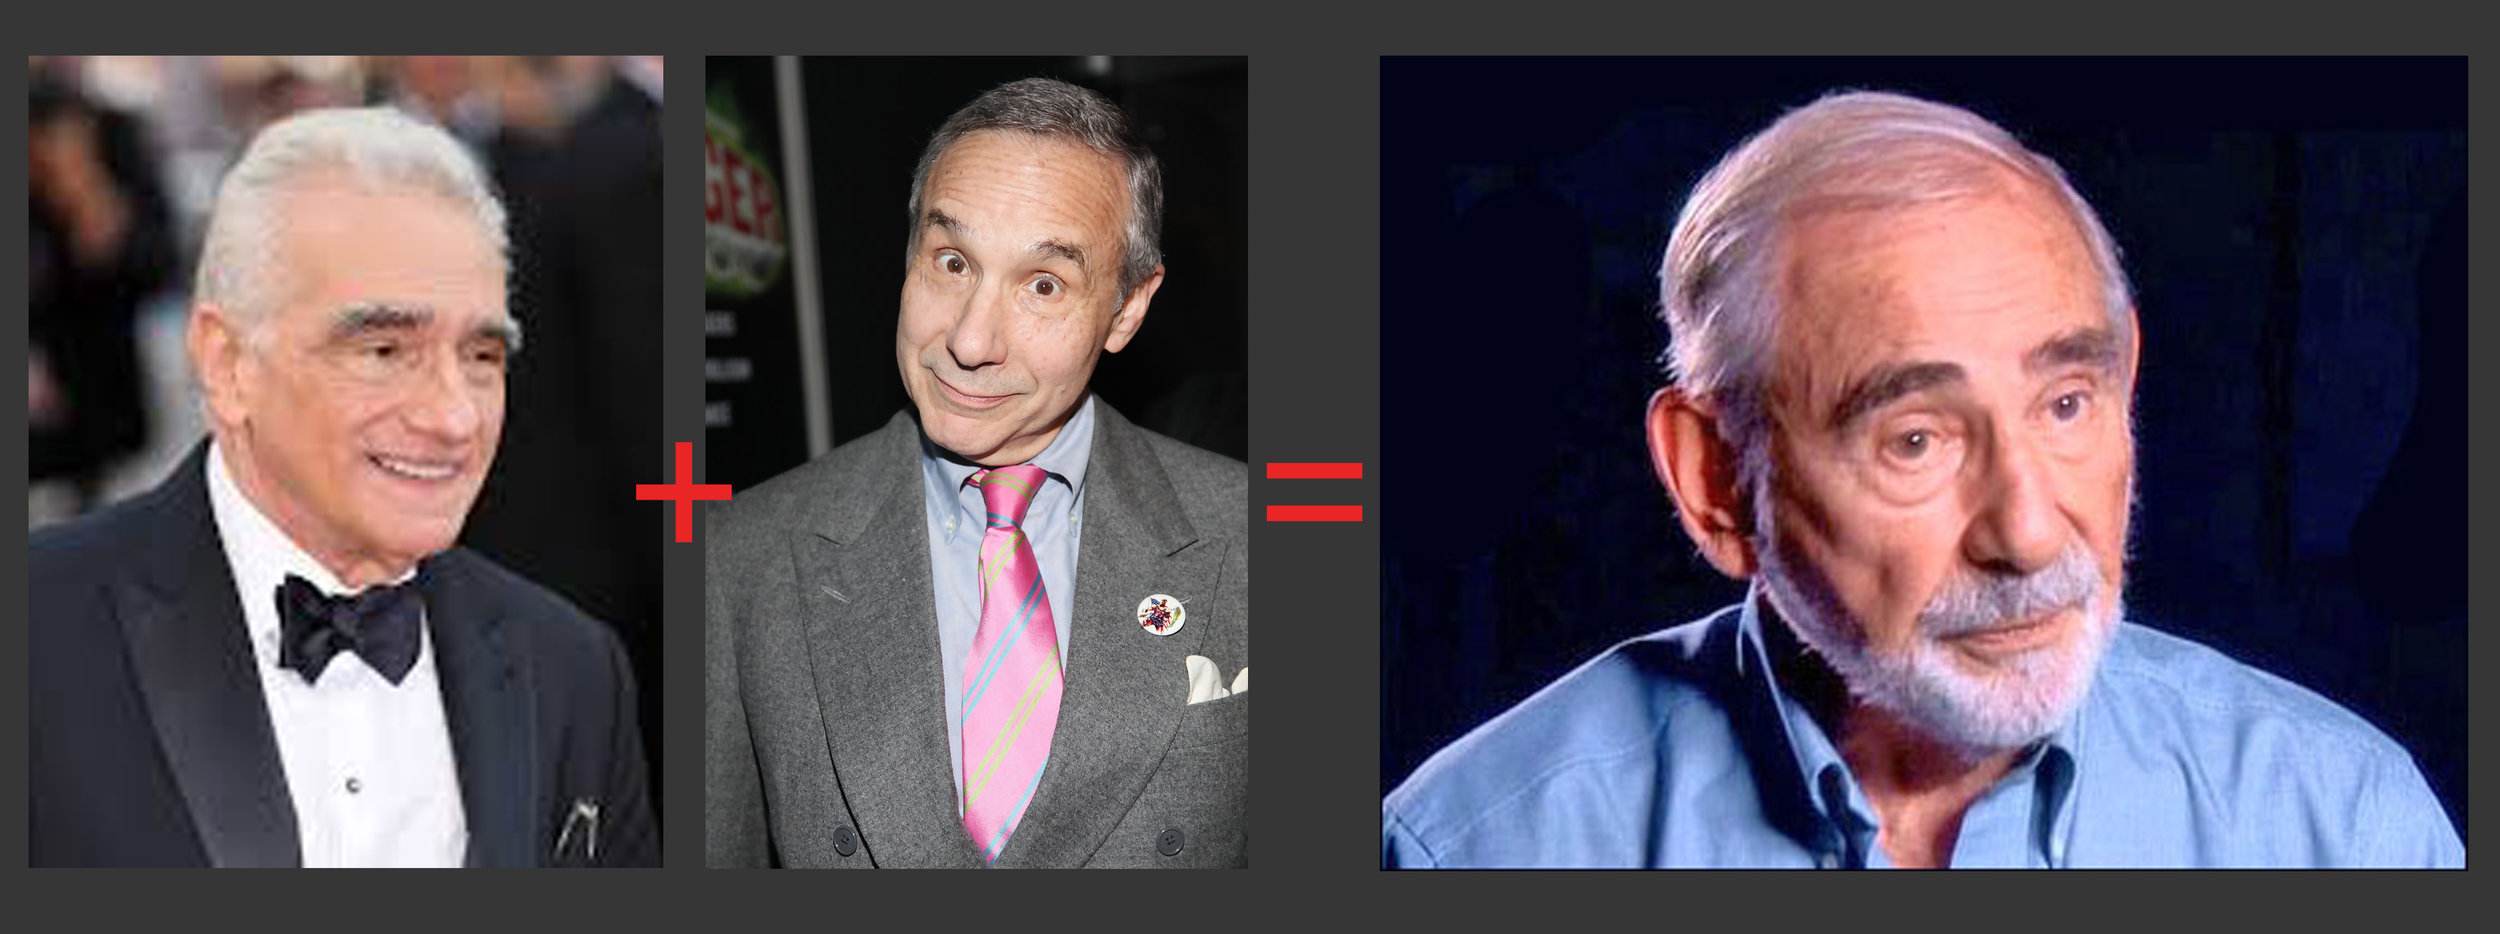 """I mistakenly called Lloyd Kaufman """"Larry,"""" and for that I'm truly sorry."""